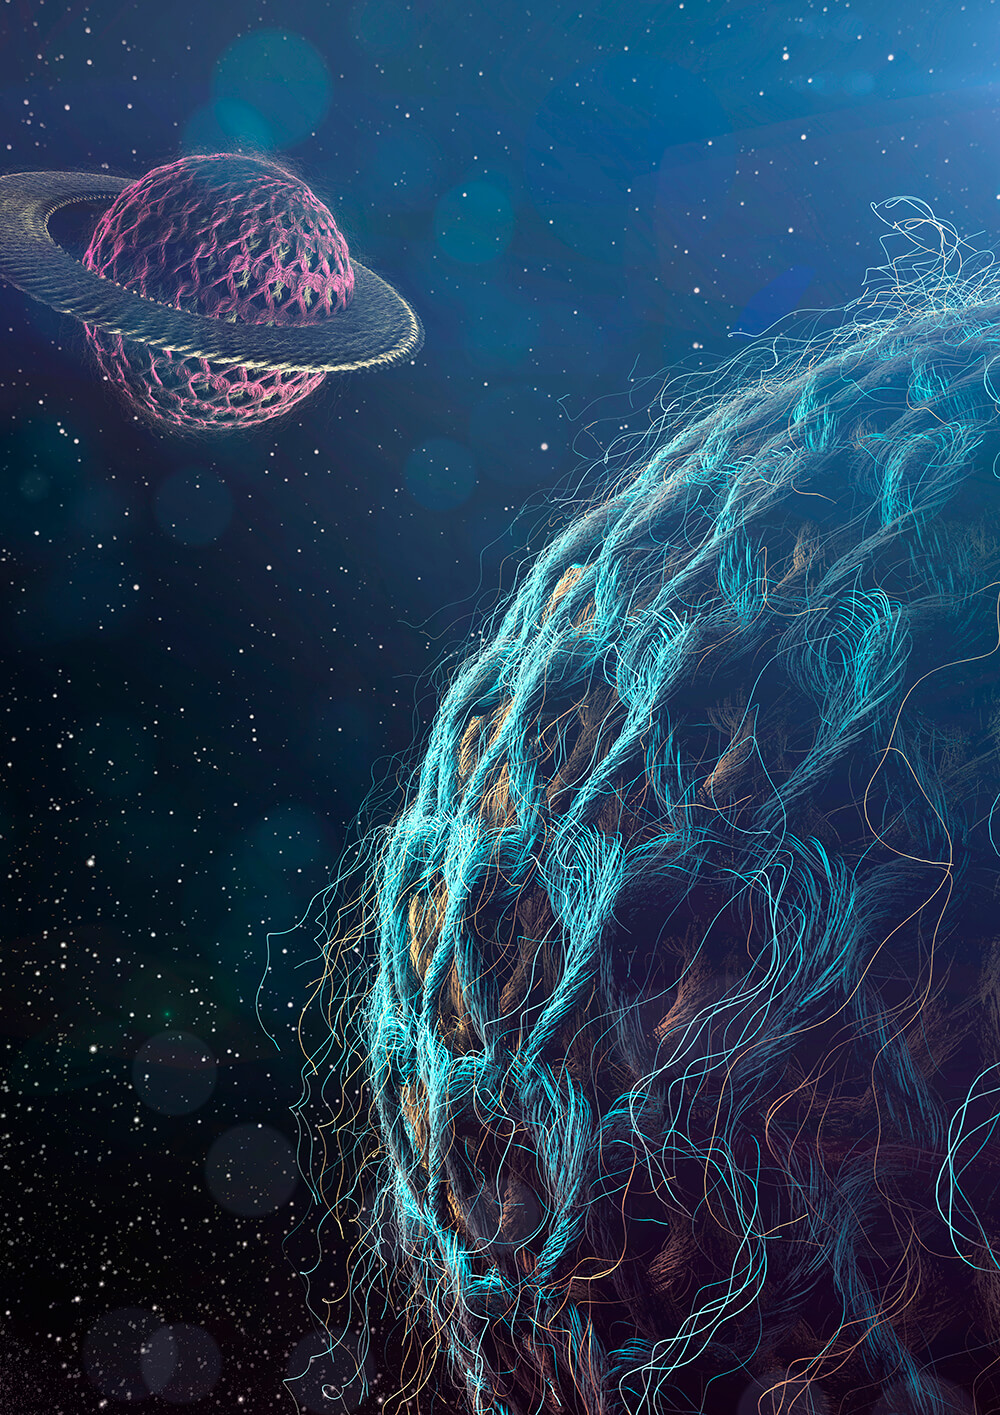 This is a picture of the illustration Knitting Planets shot from 3D Artist Magazine number 84